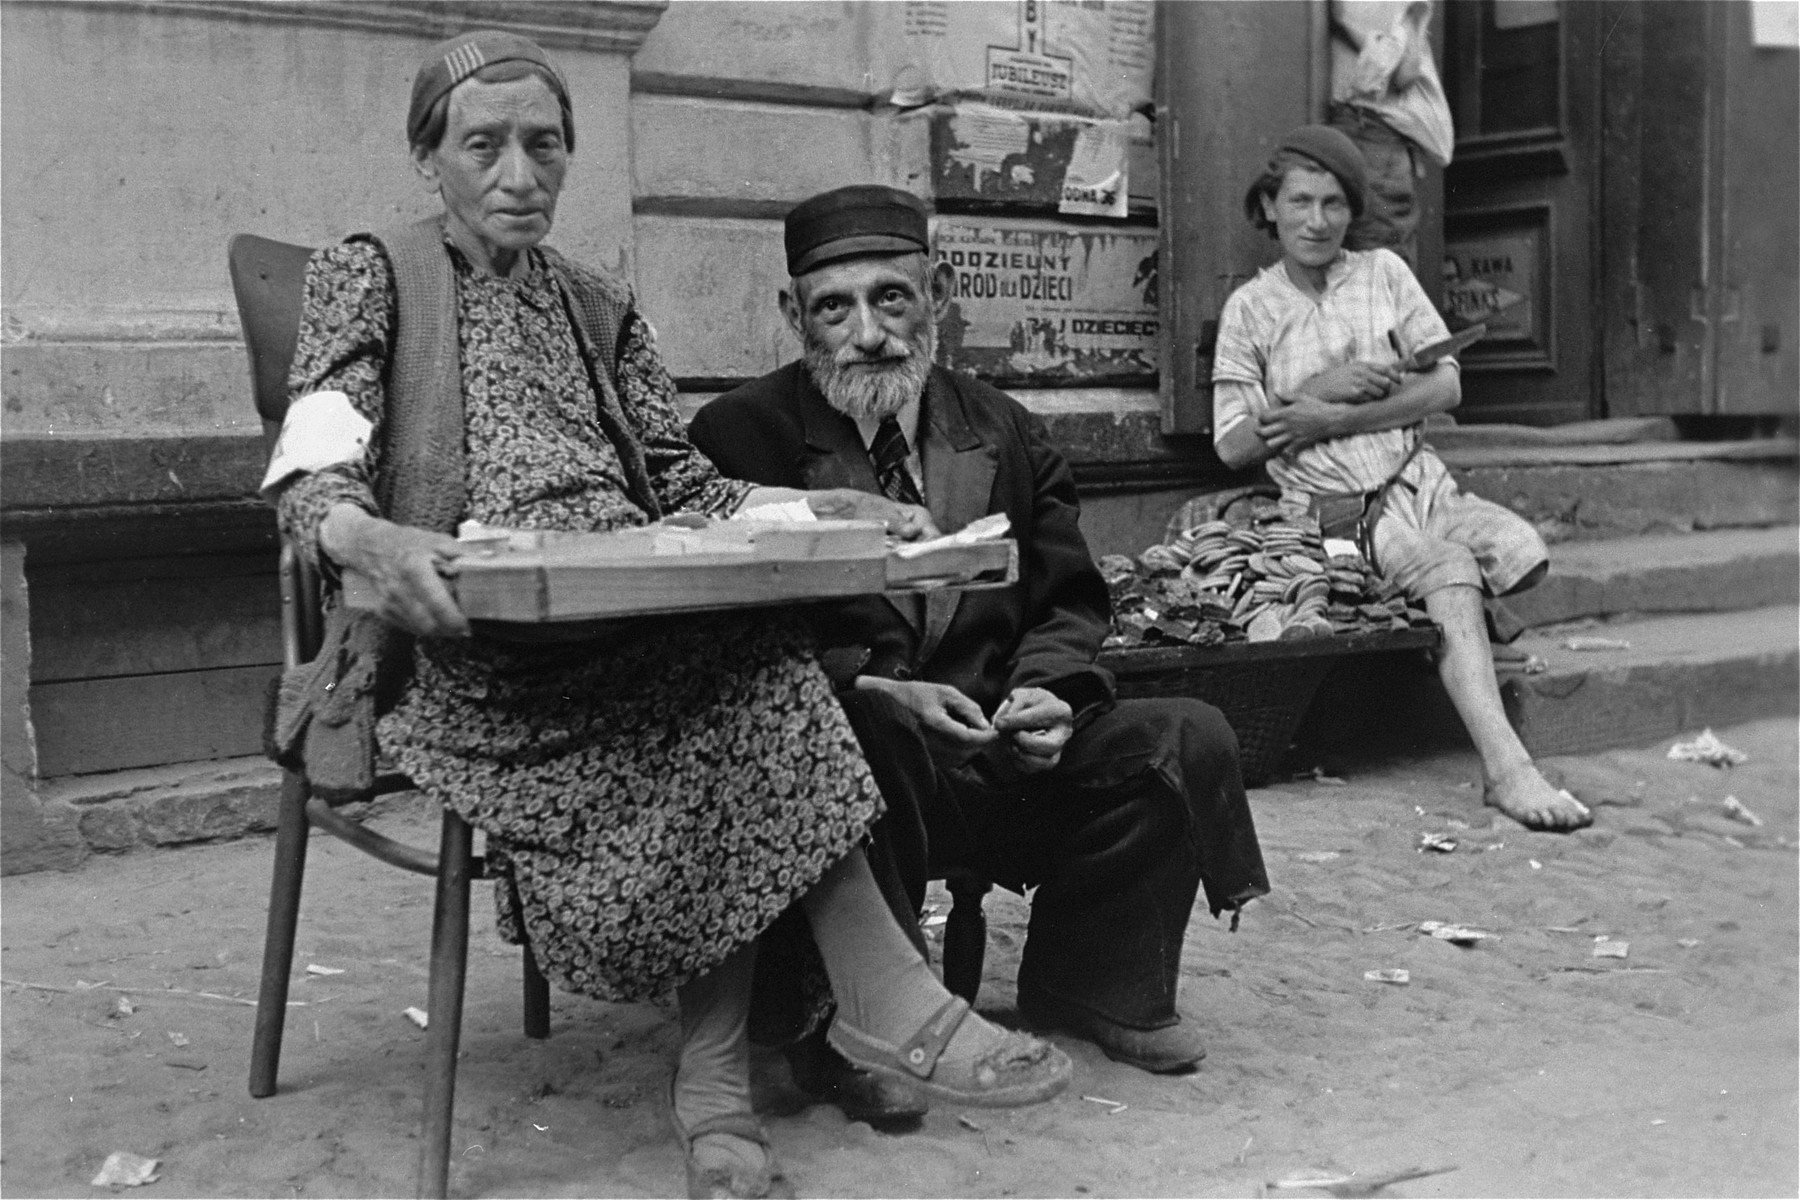 An elderly couple sells goods on the street in the Warsaw ghetto.